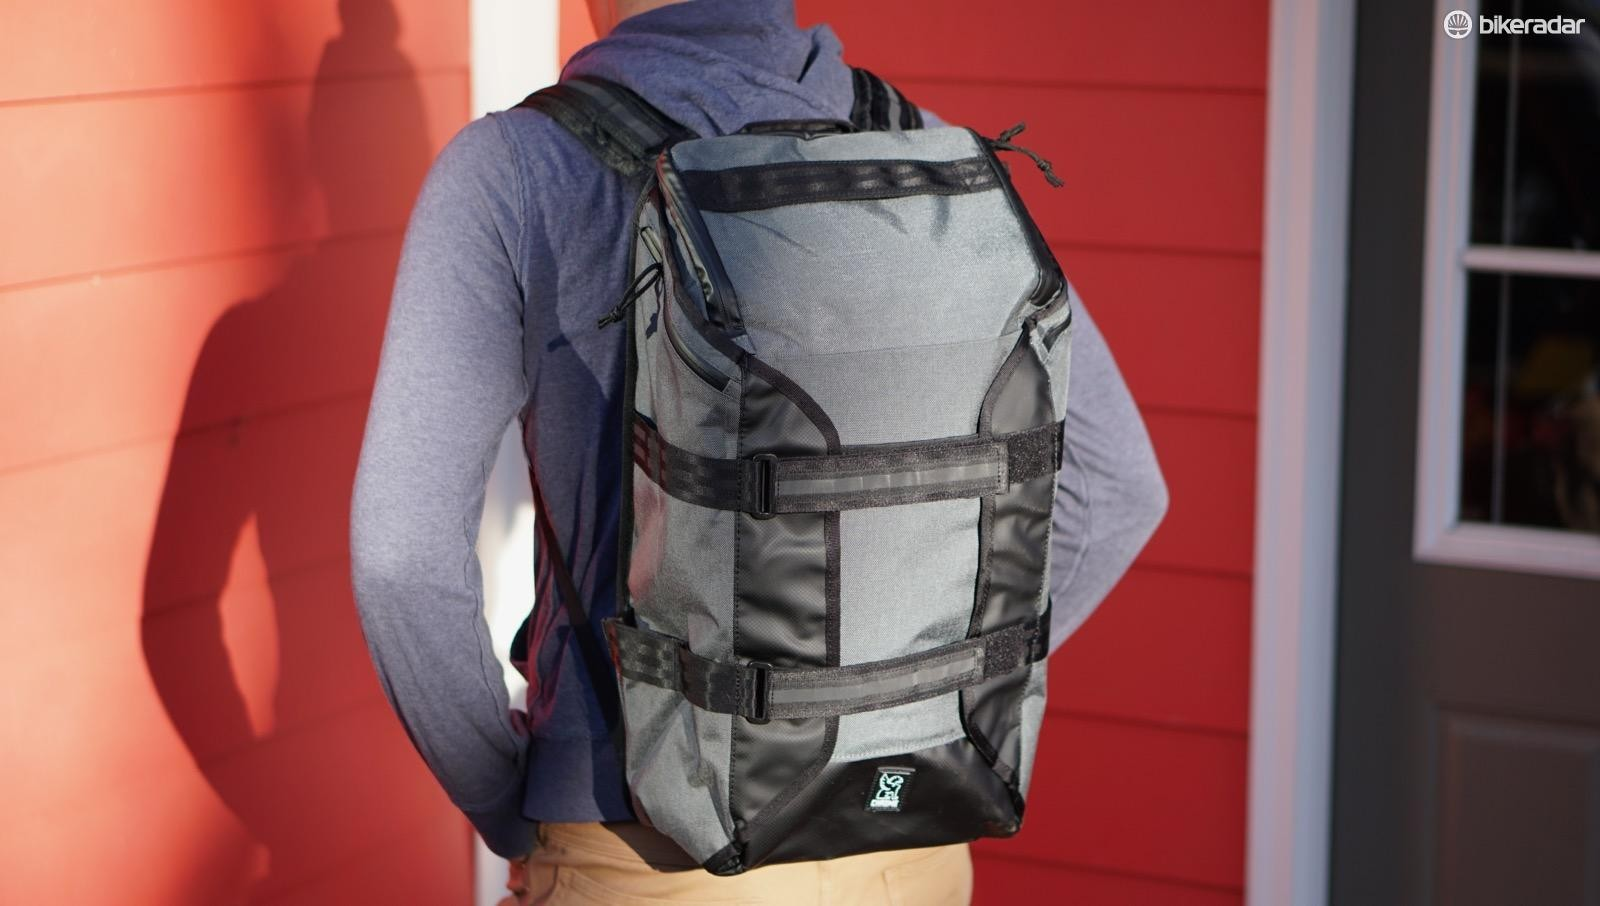 Chrome's Brigade Backpack has a padded laptop sleeve, a big cargo hold, and all manner of external carrying options